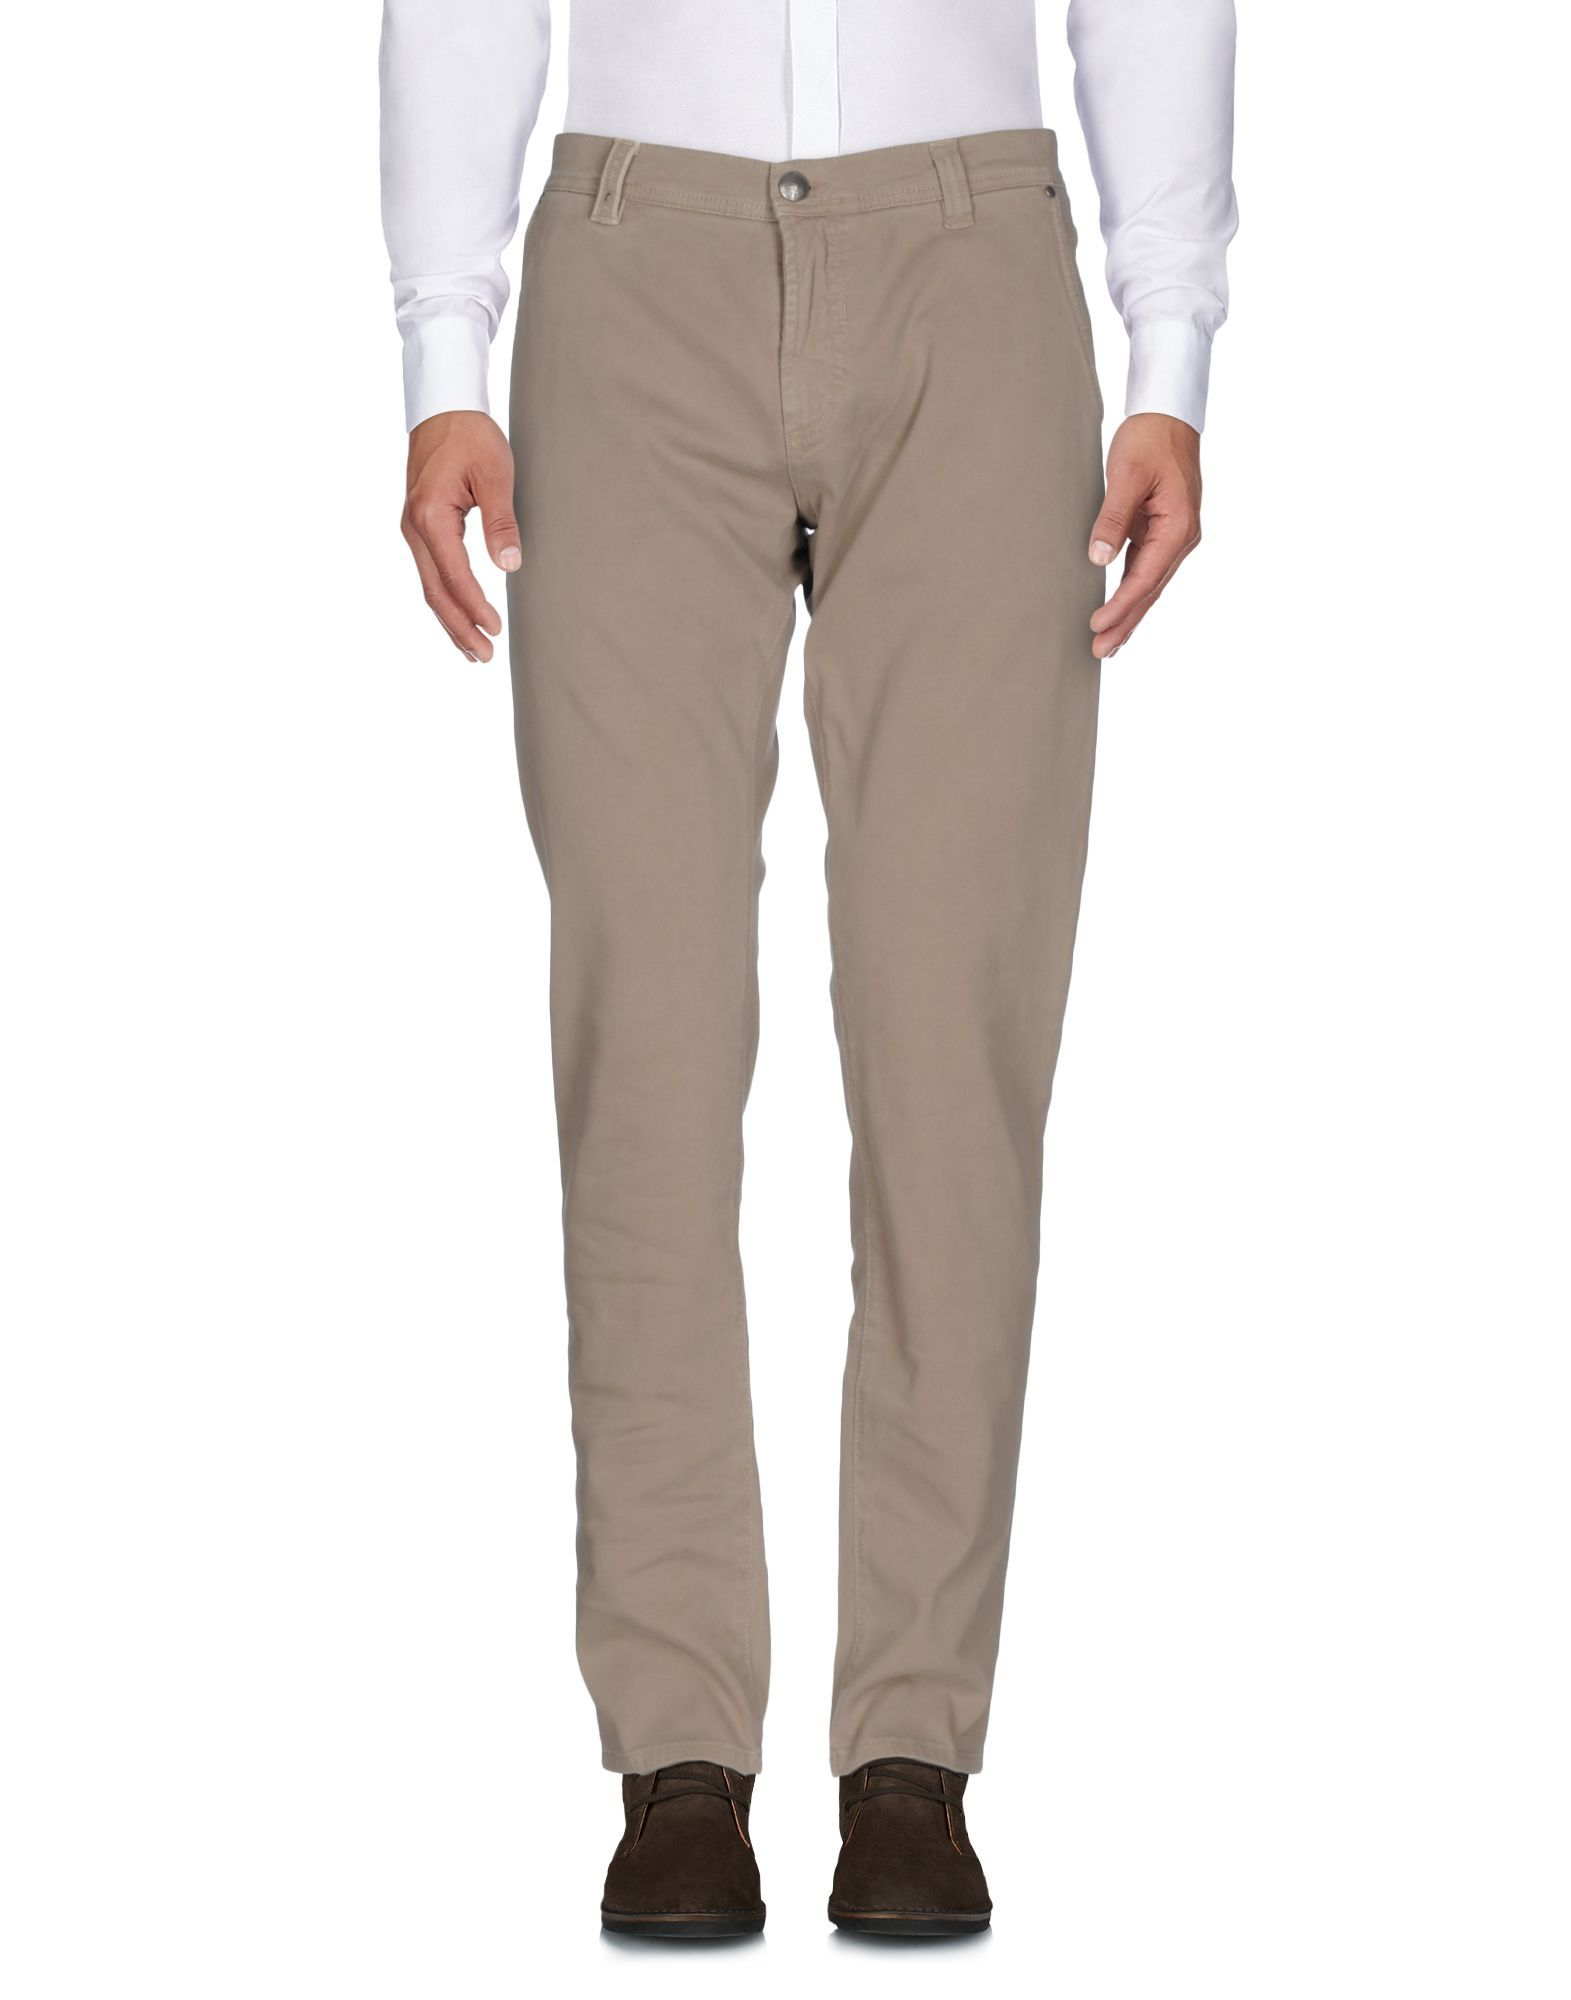 TROUSERS Nicwave Beige Man Cotton